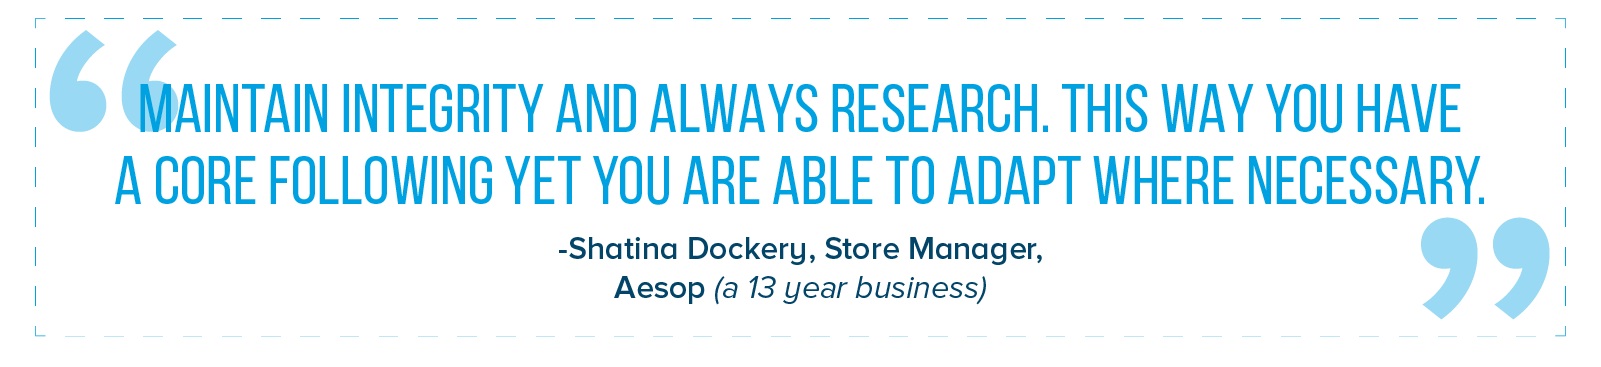 Deputy-30 Tips Real Owners Share for Keeping a Retail Business From Going Stale-blog assets-14